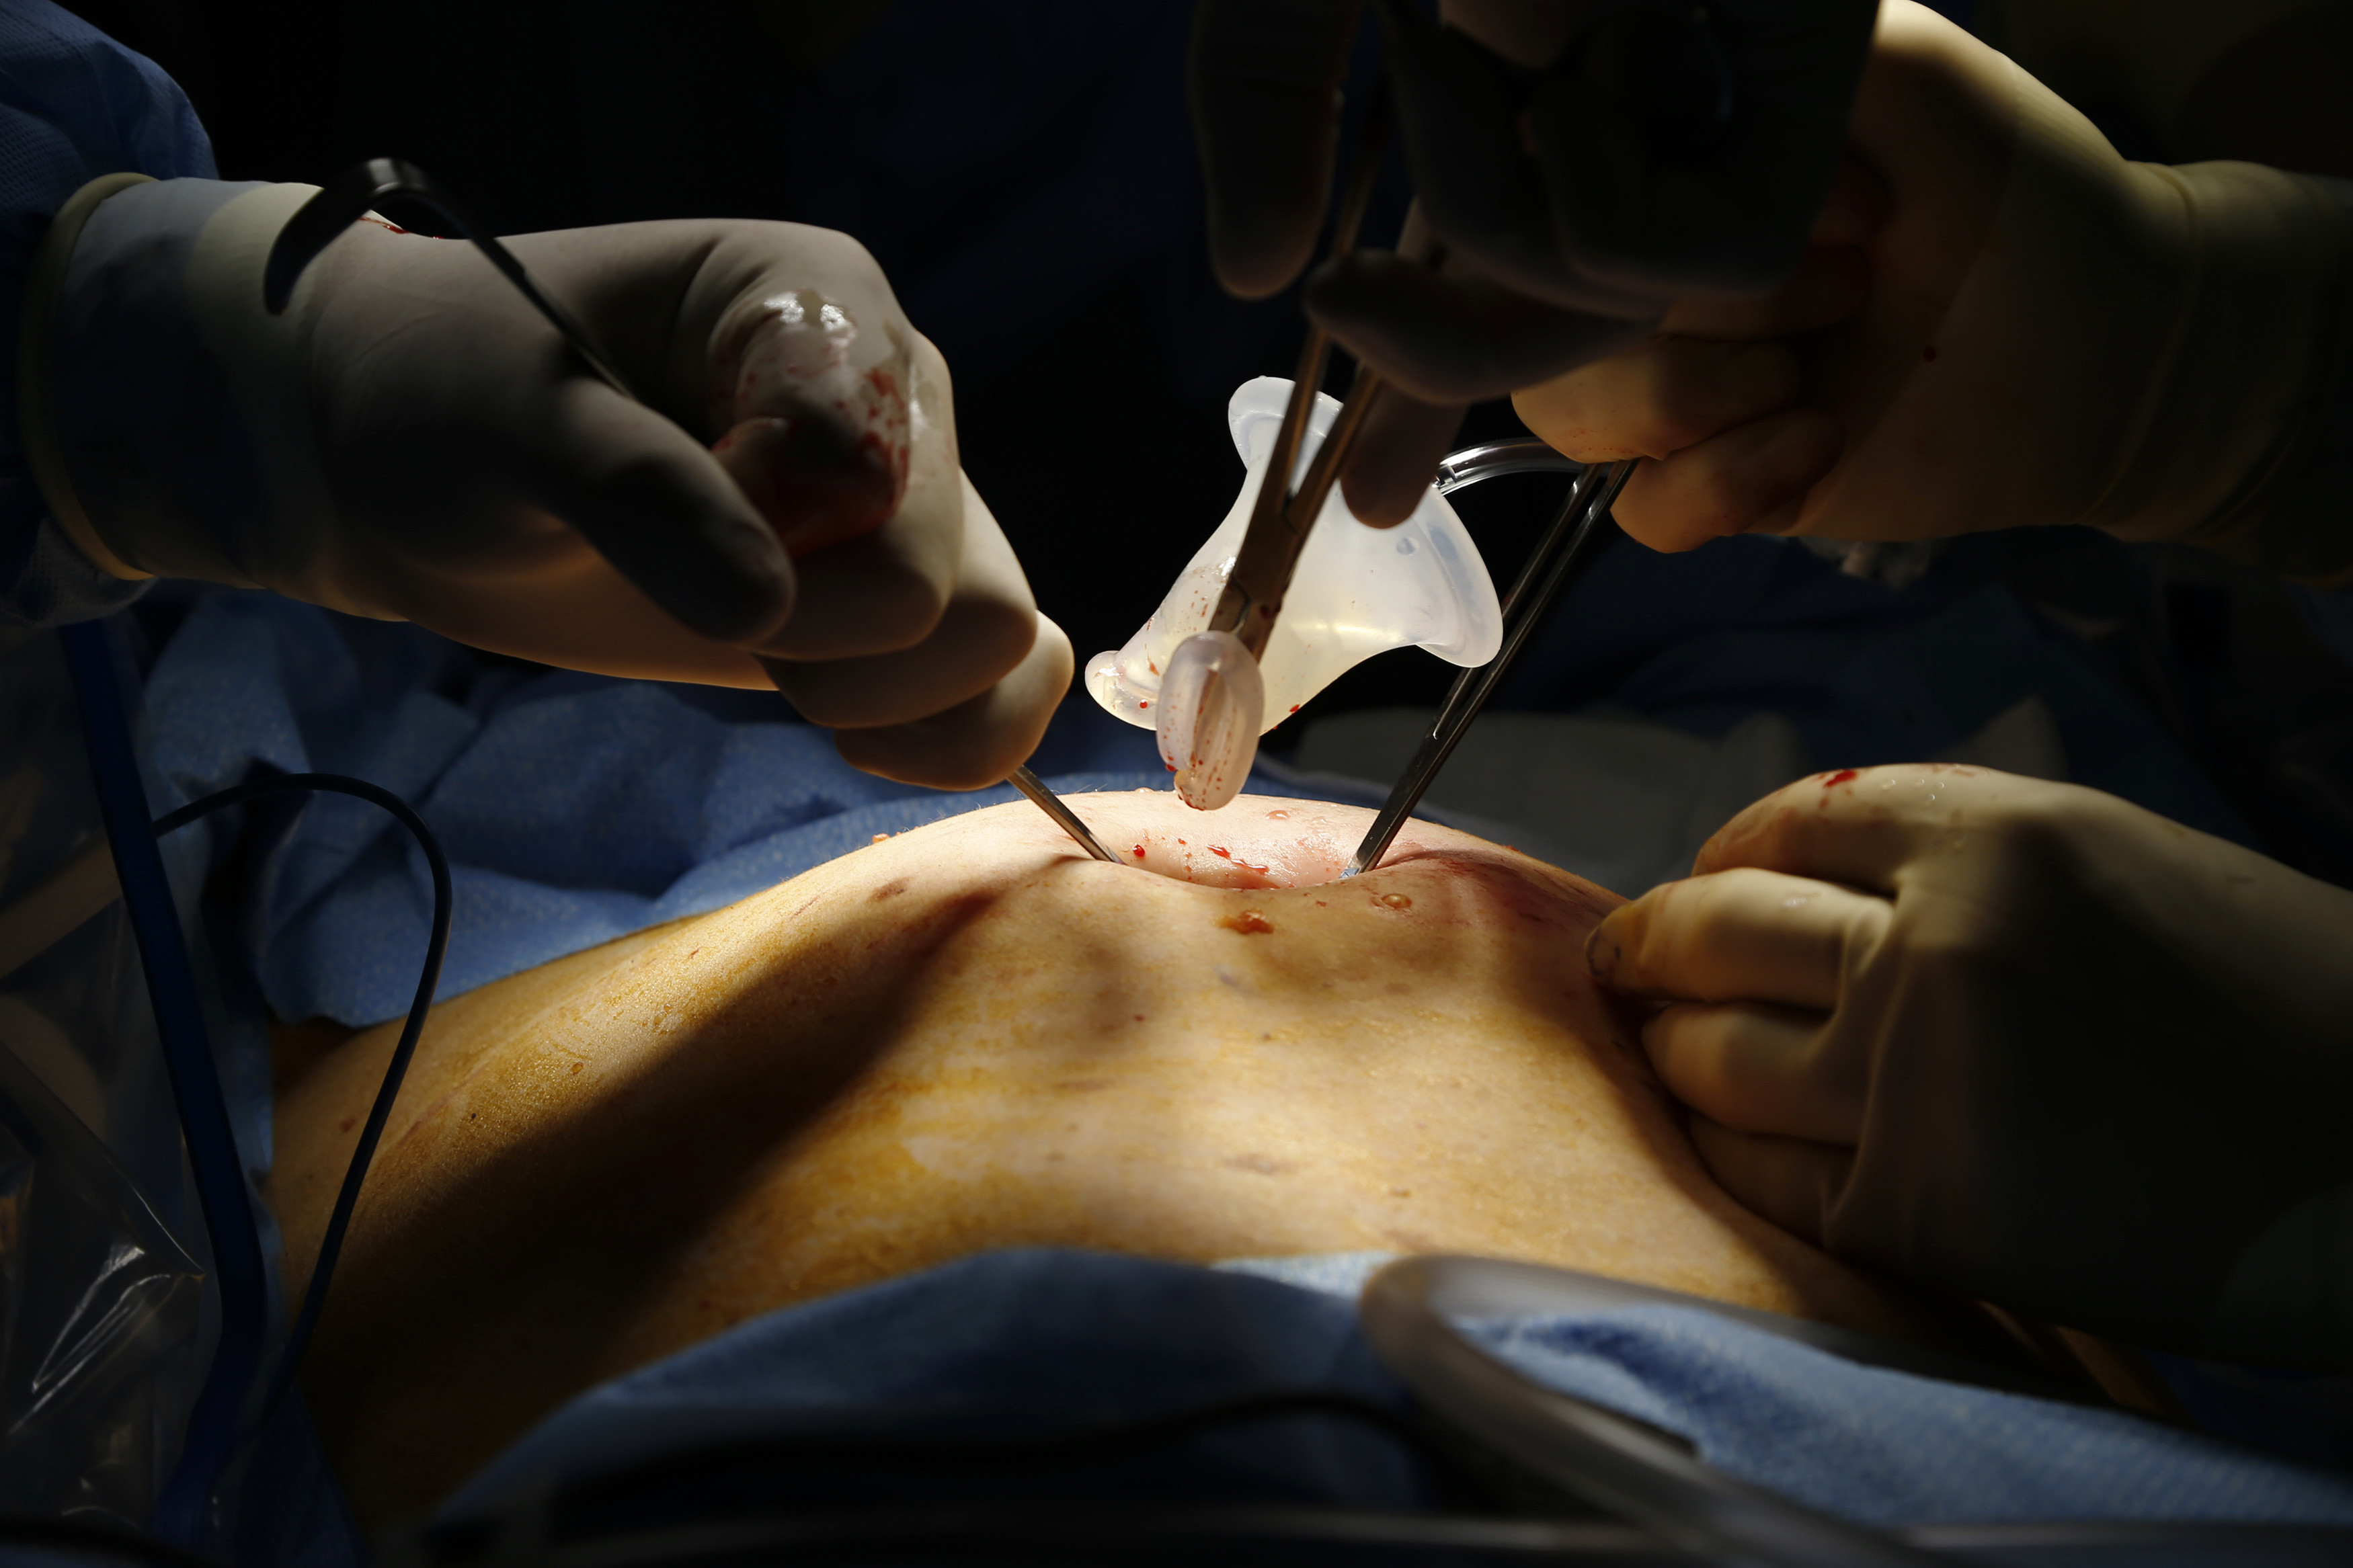 A picture of surgeons operating.